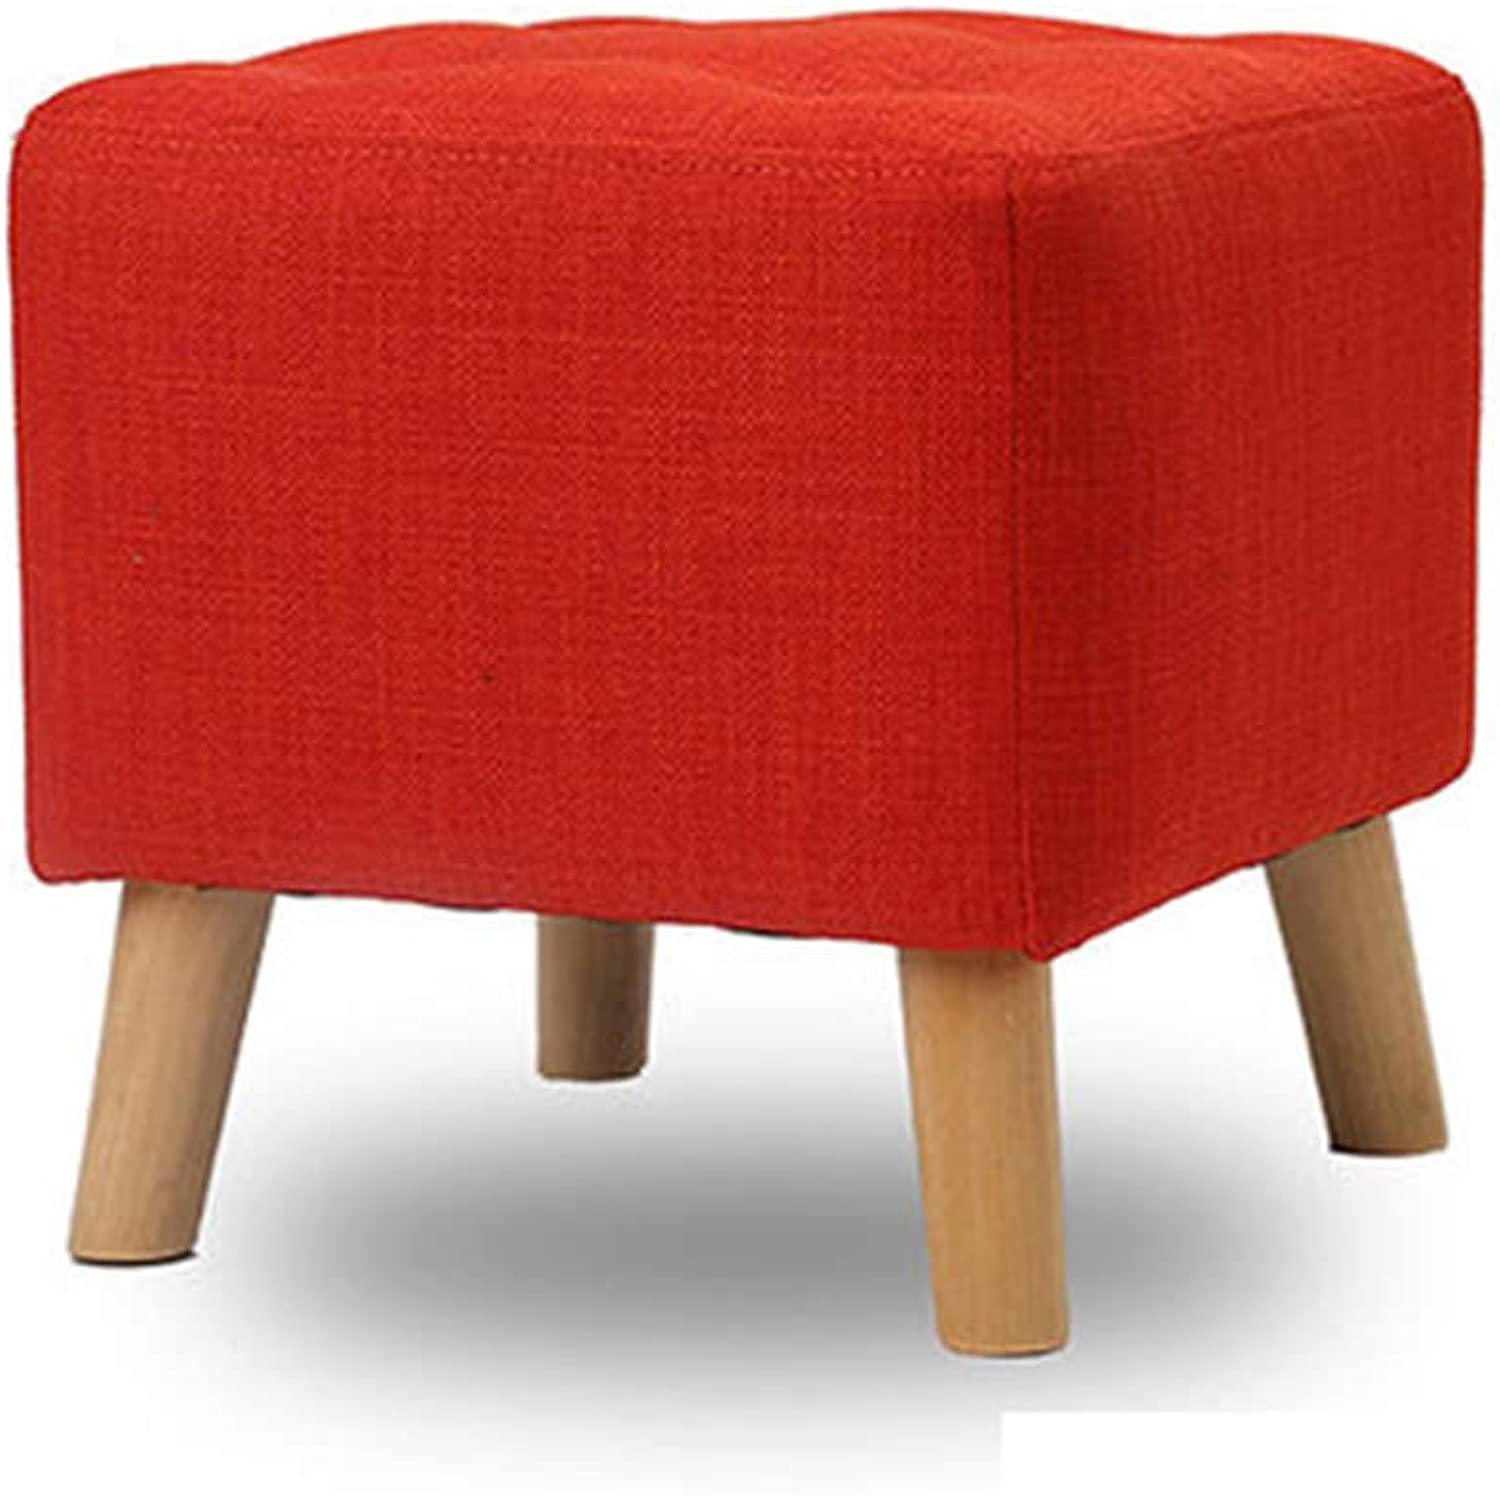 Change shoes Stool Square Stool Solid Wood Simple Stool Creative wear shoes Stool Square Stool Fabric Sofa Bench Bench Stool